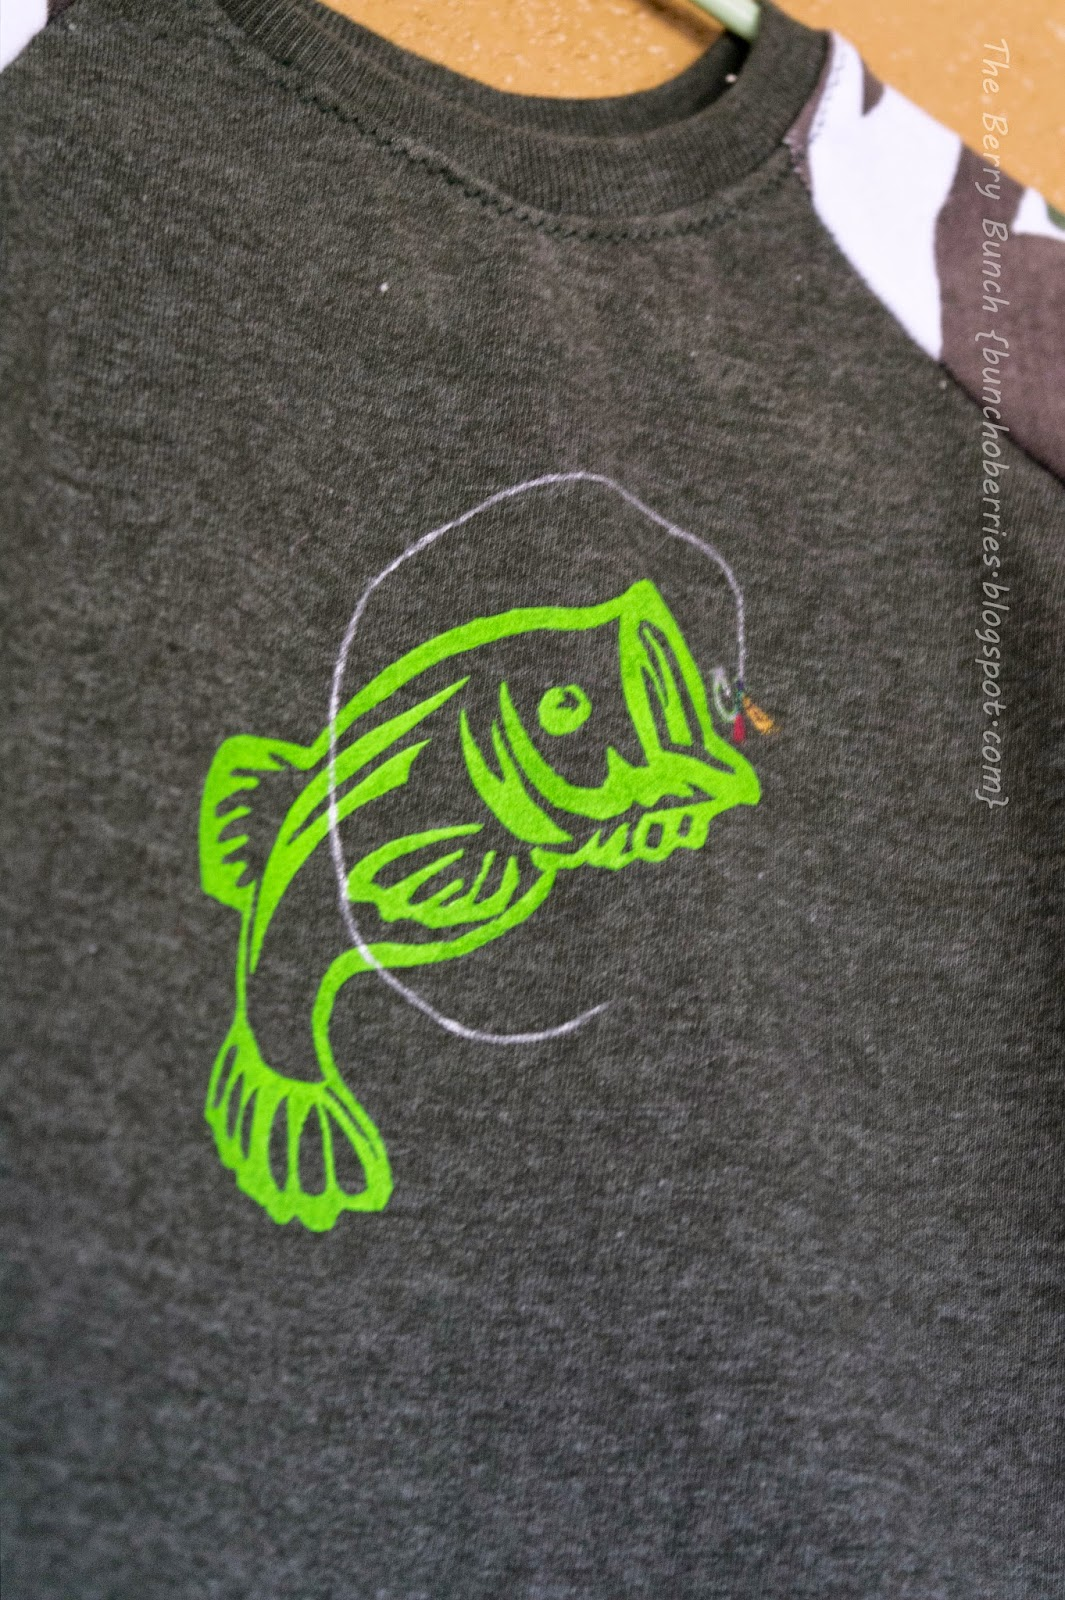 Bass Fishing: GYCT Designs Rival Raglan: The Berry Bunch